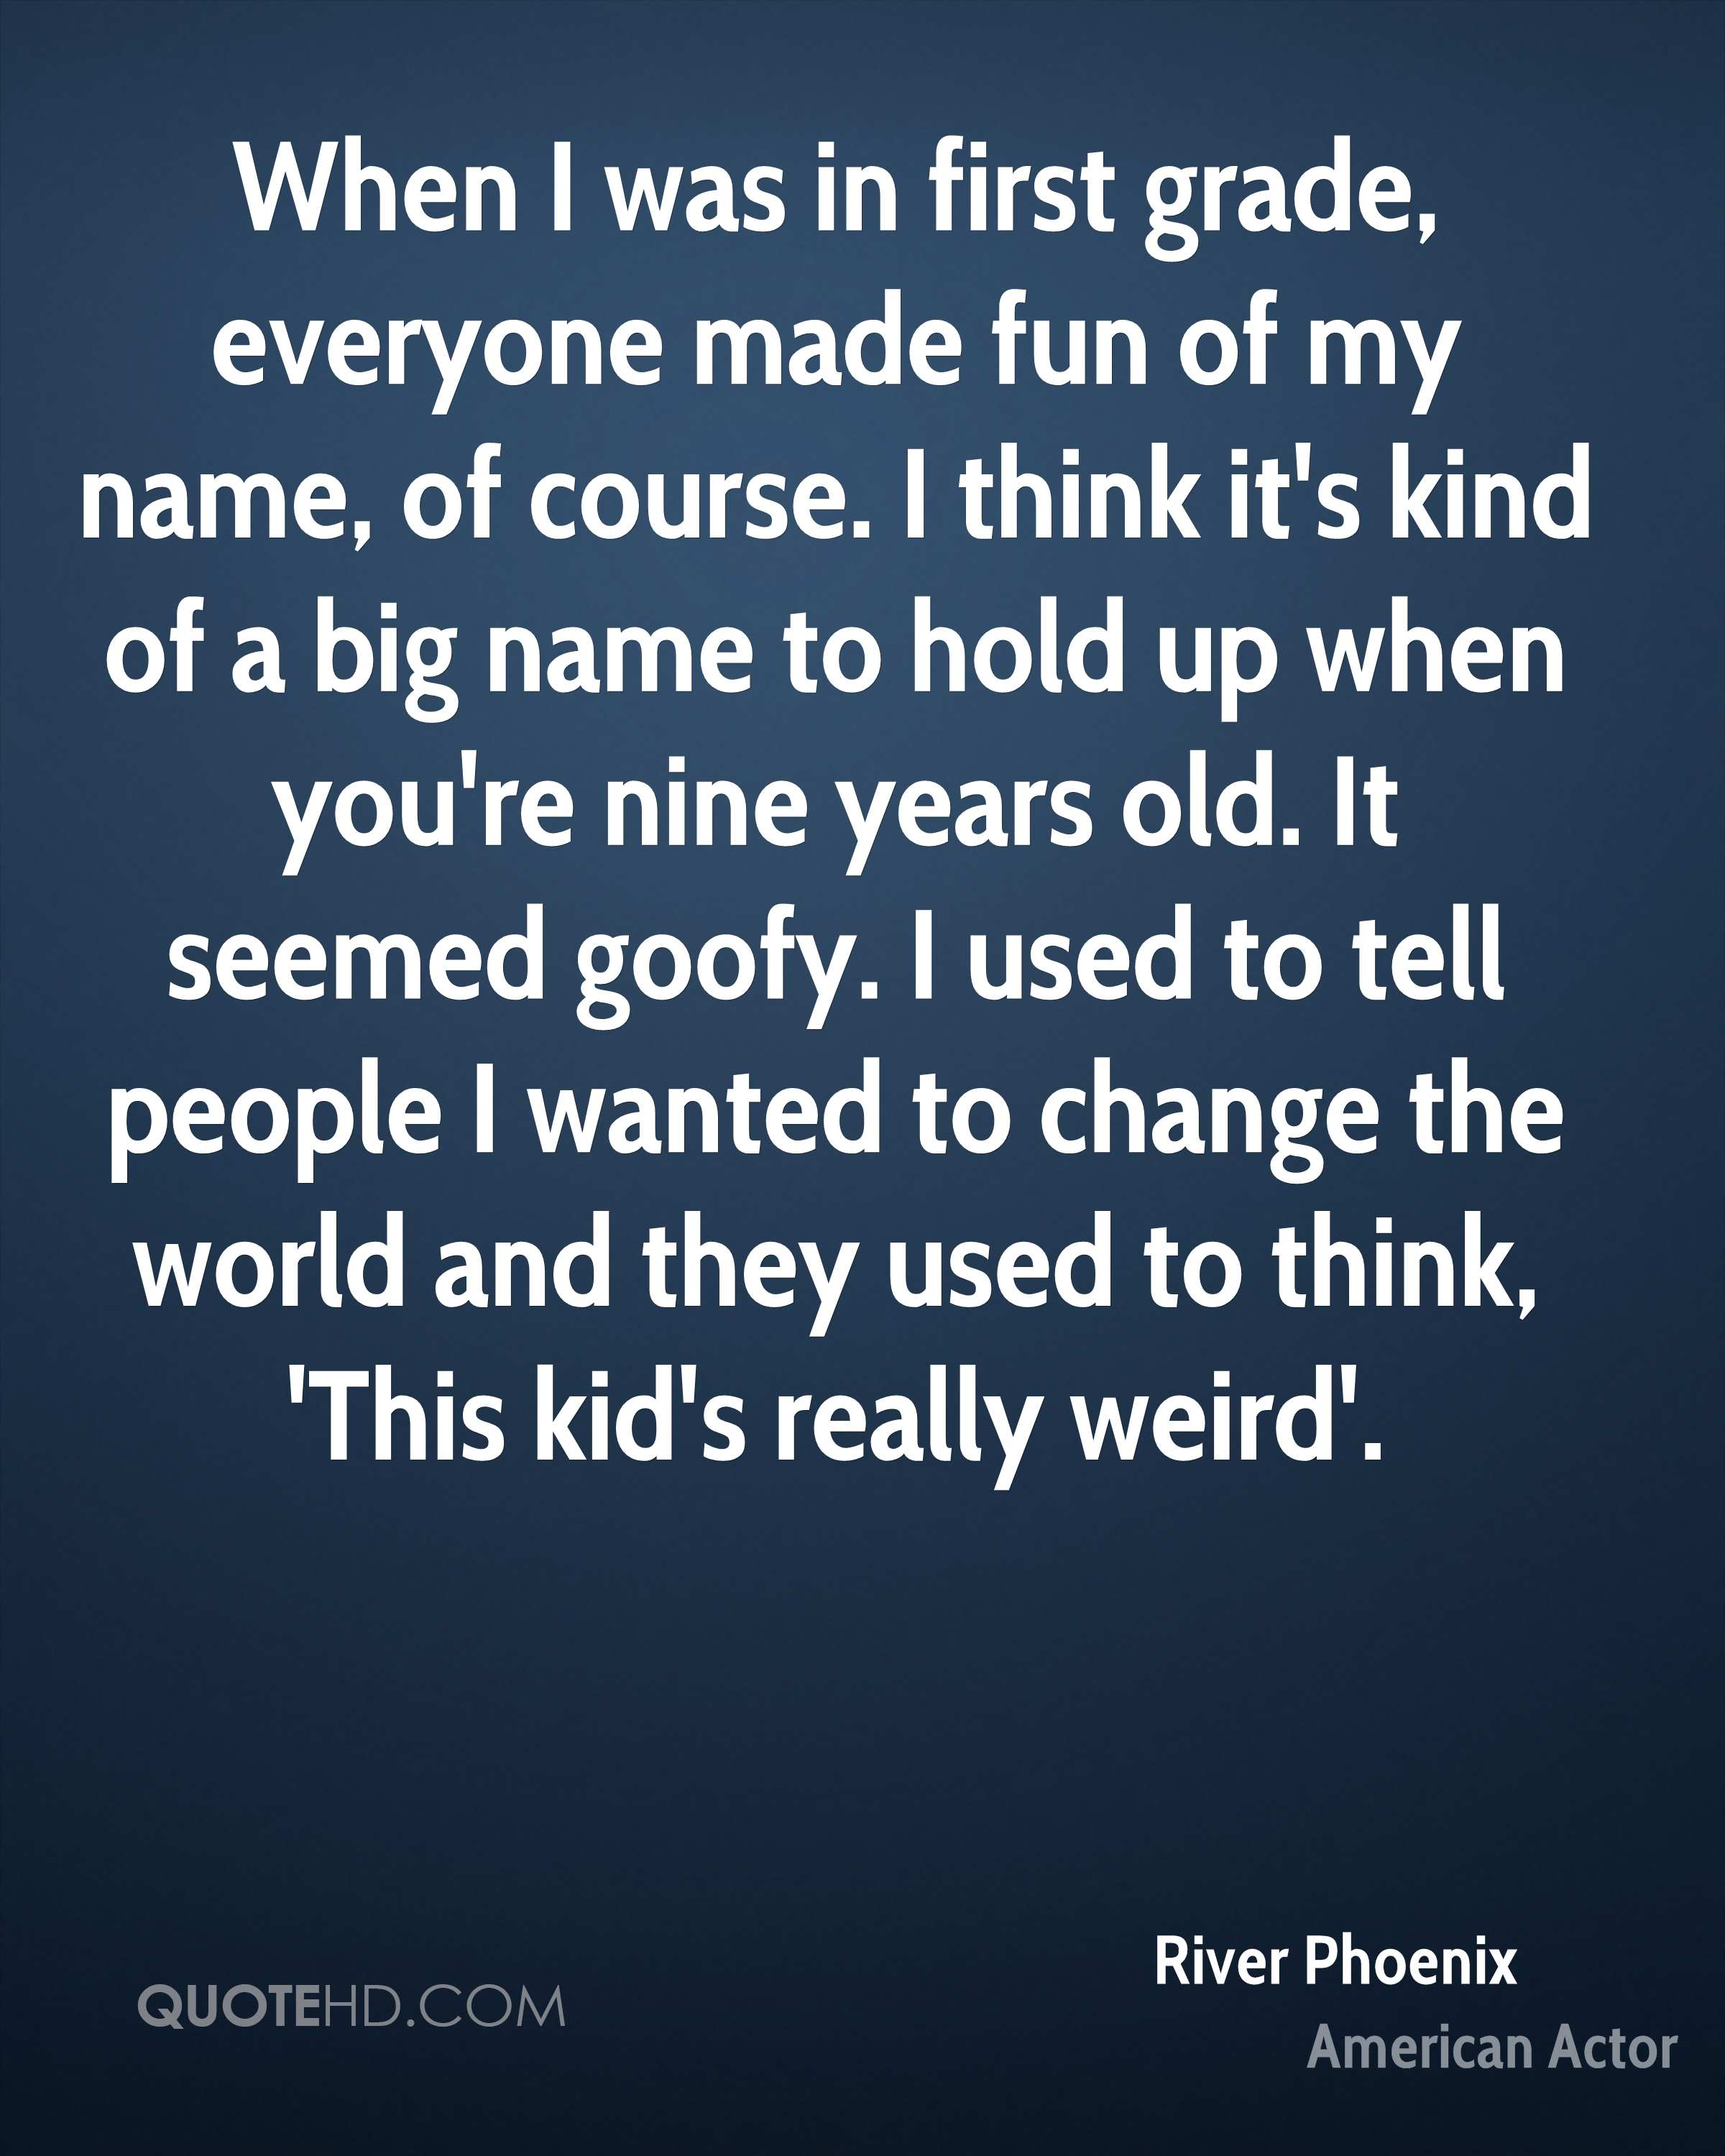 When I was in first grade, everyone made fun of my name, of course. I think it's kind of a big name to hold up when you're nine years old. It seemed goofy. I used to tell people I wanted to change the world and they used to think, 'This kid's really weird'.